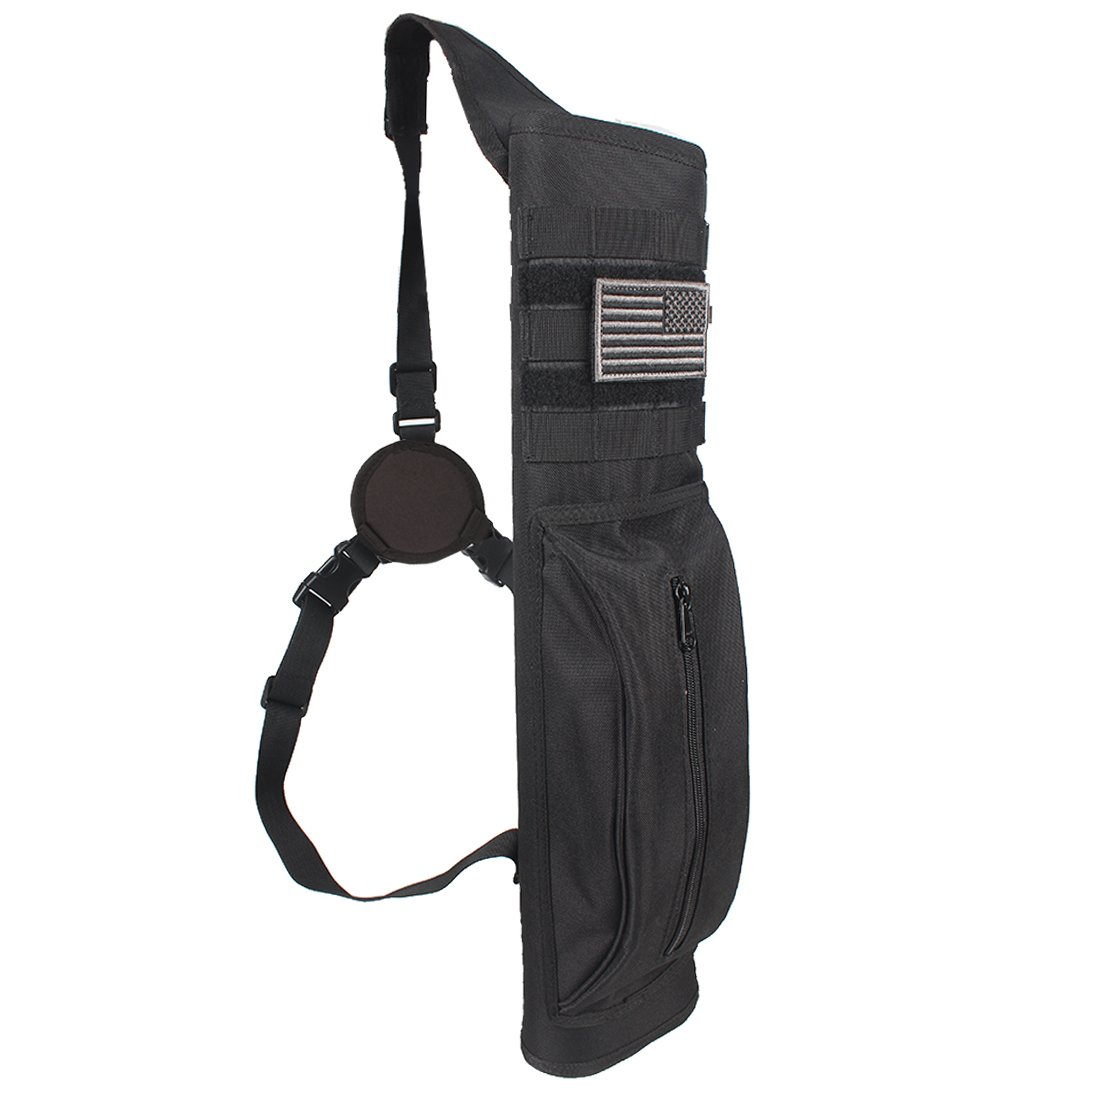 KRATARC Archery Multi-Function Heavy Duty Back Arrow Quiver with Molle System Shoulder Hanged Target Shooting Quiver for Arrows by KRATARC